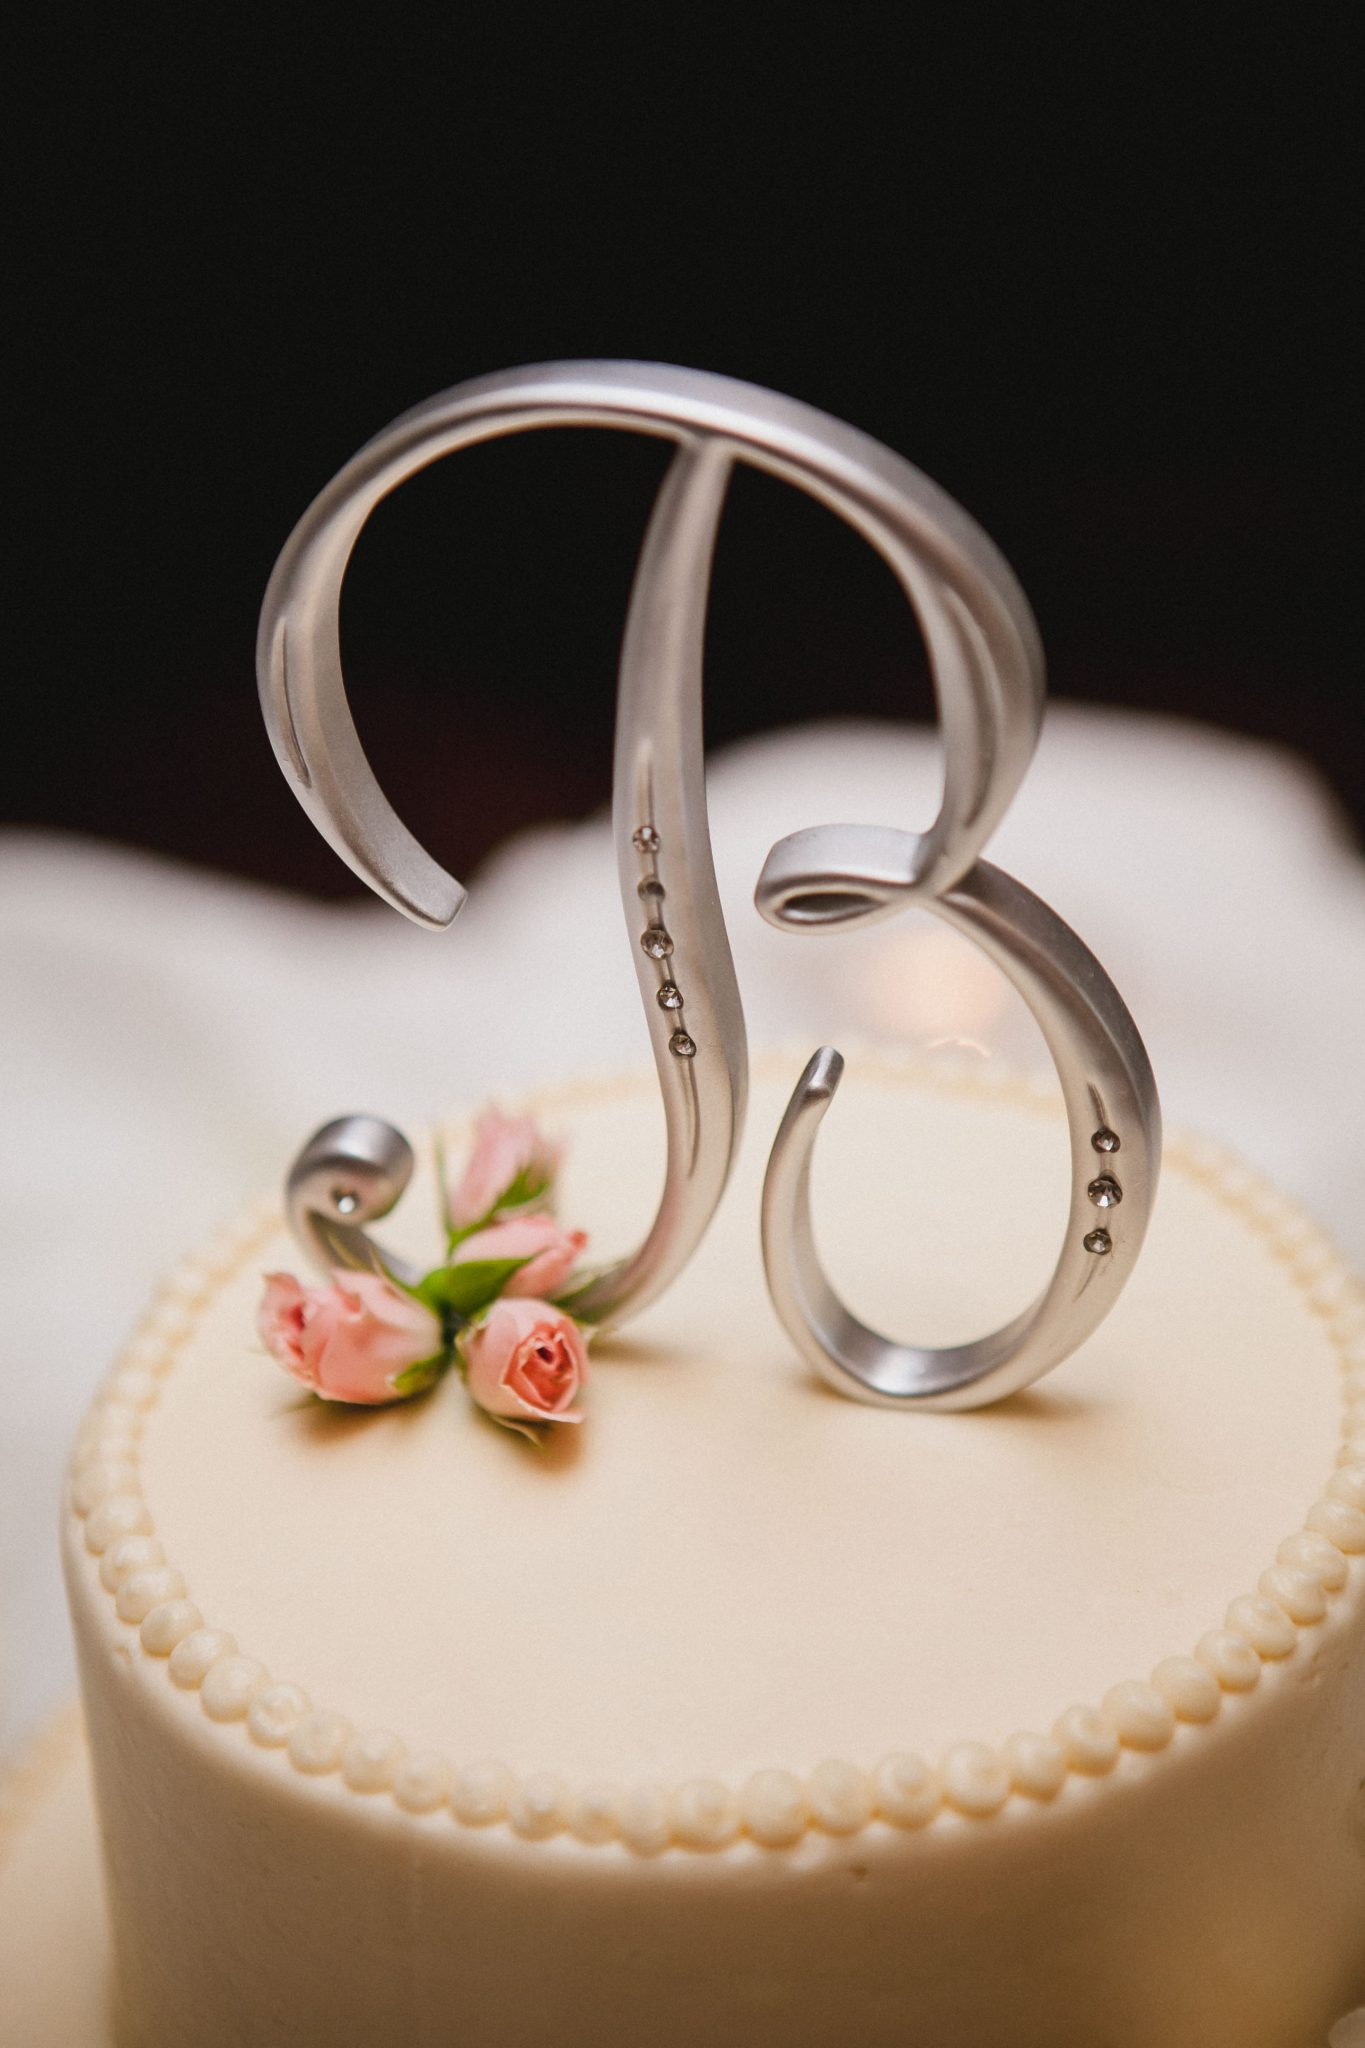 Wedding cake topper with the letter B in silver